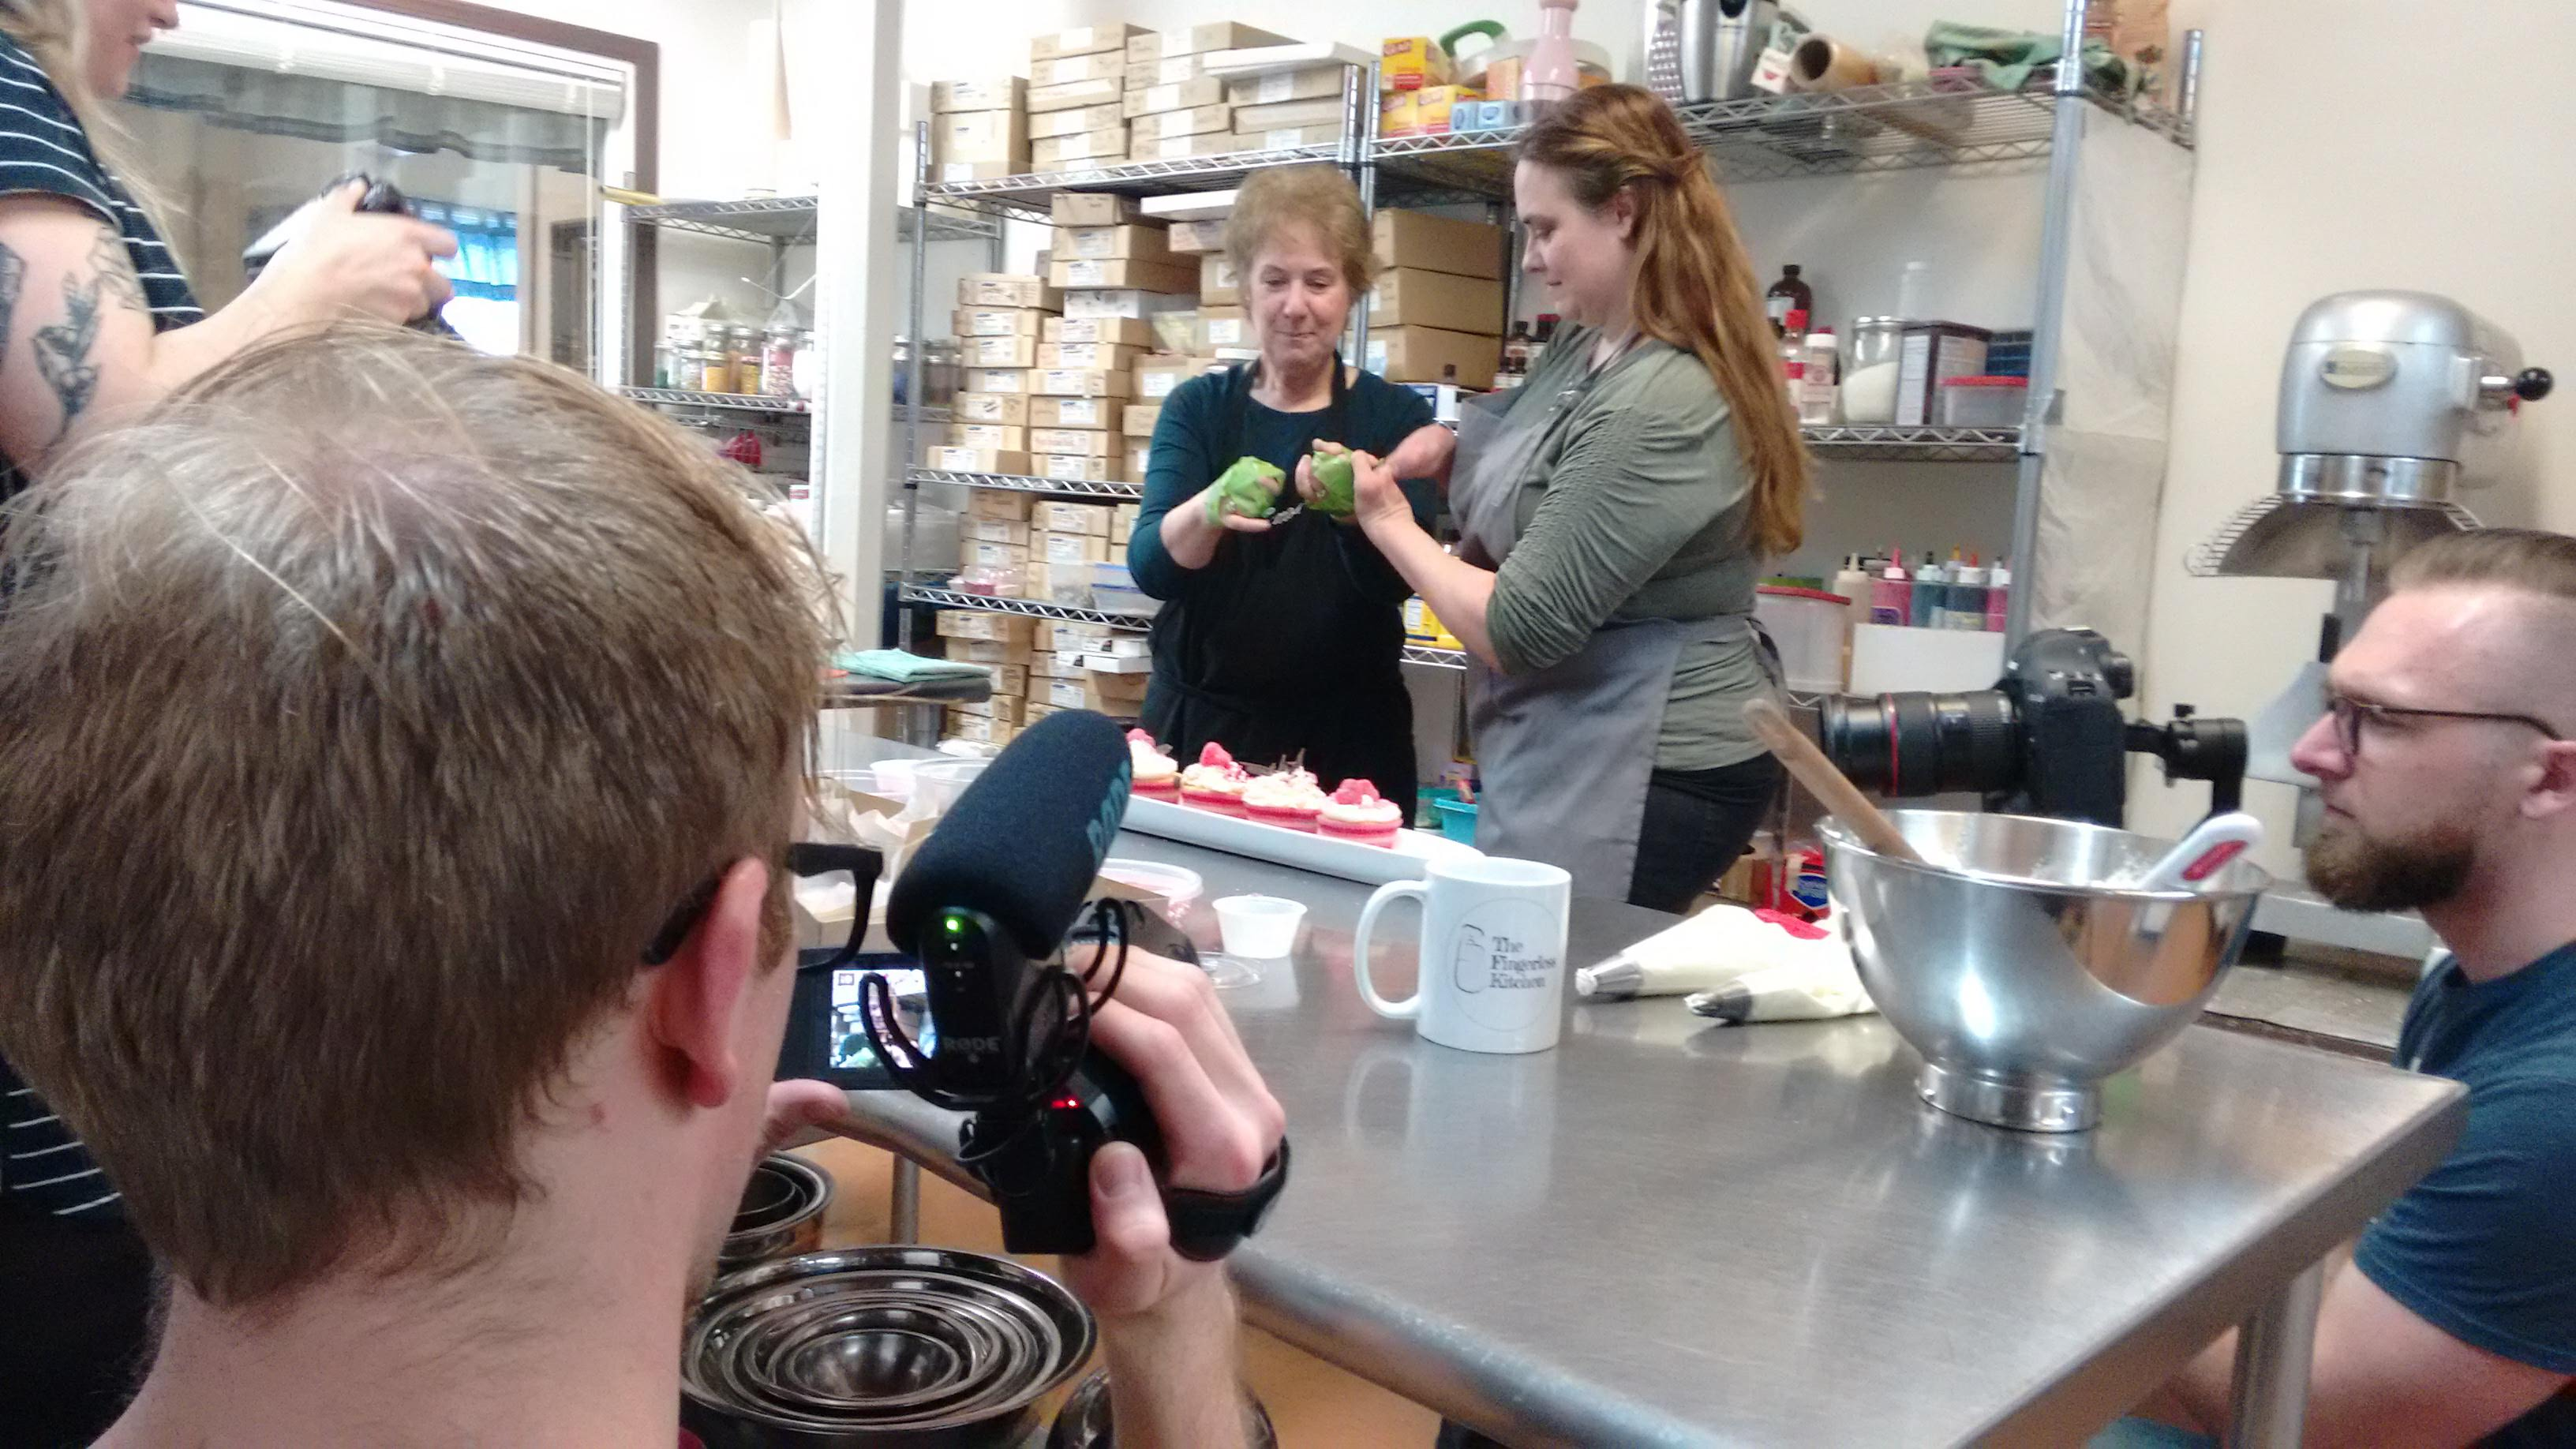 Cameras and crew behind the scenes in the kitchen of Halfmoon Bakery